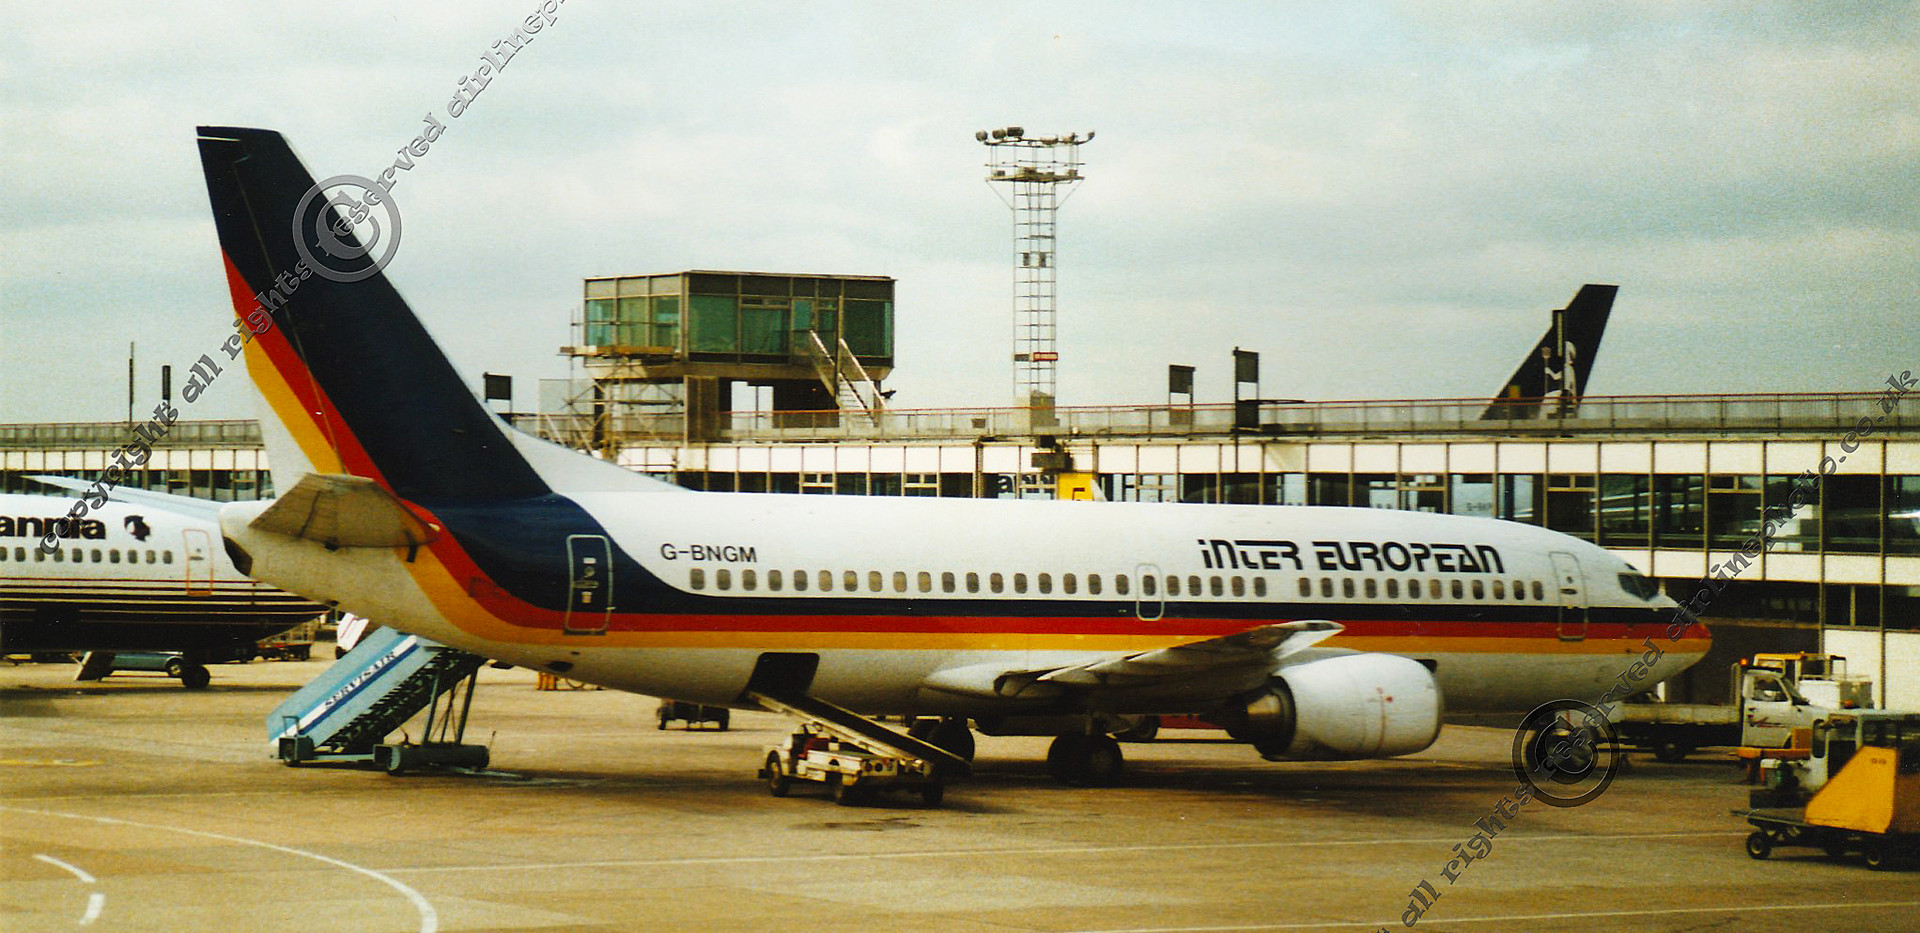 G-BNGM-Inter-European-737-MAN-1991.jpg